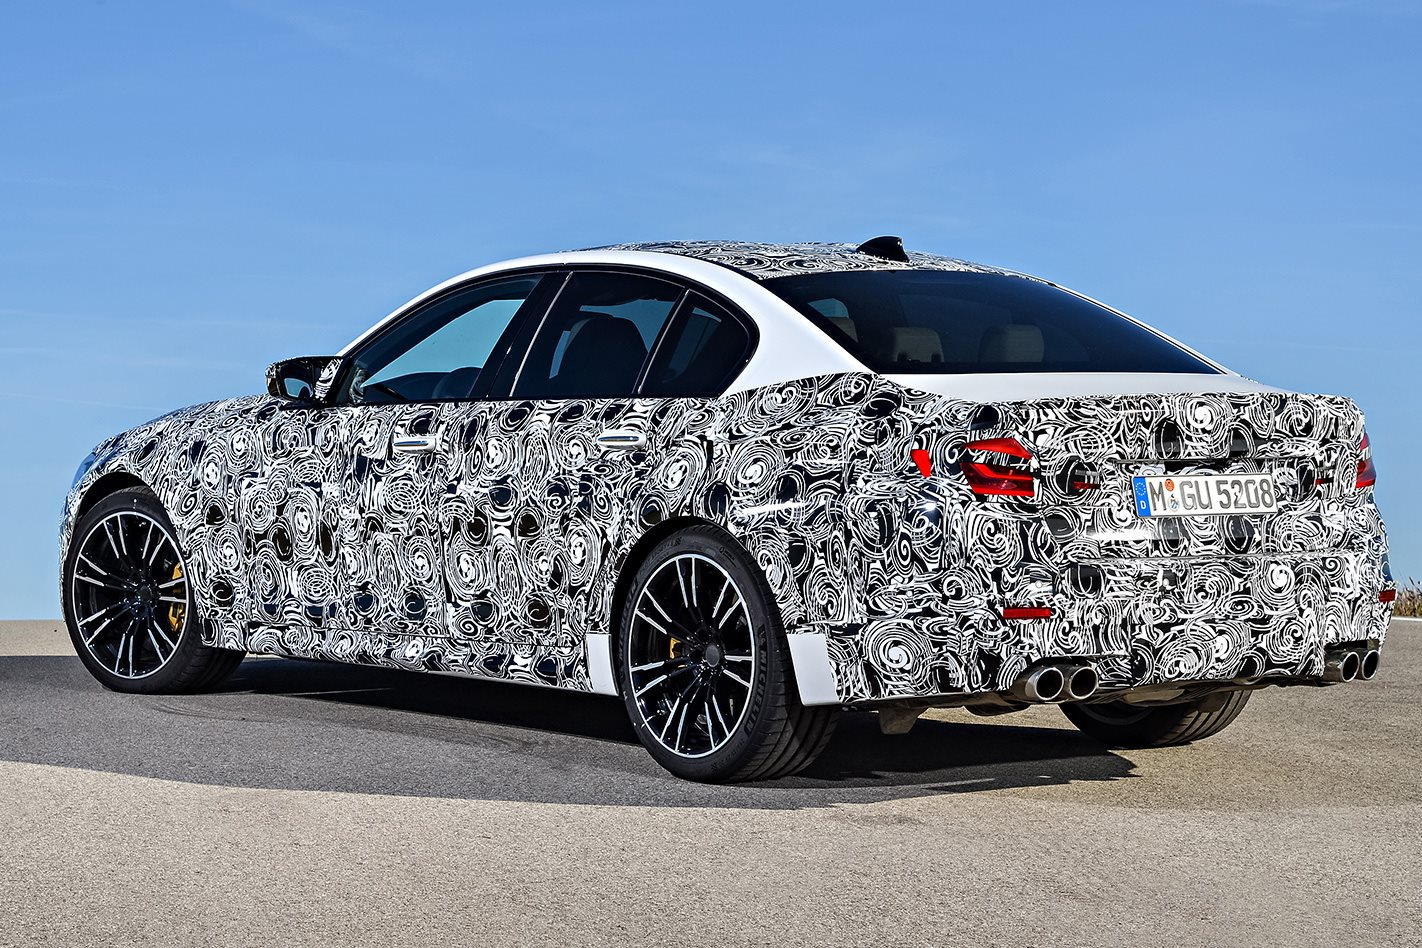 BMW F90 M5 prototype rear